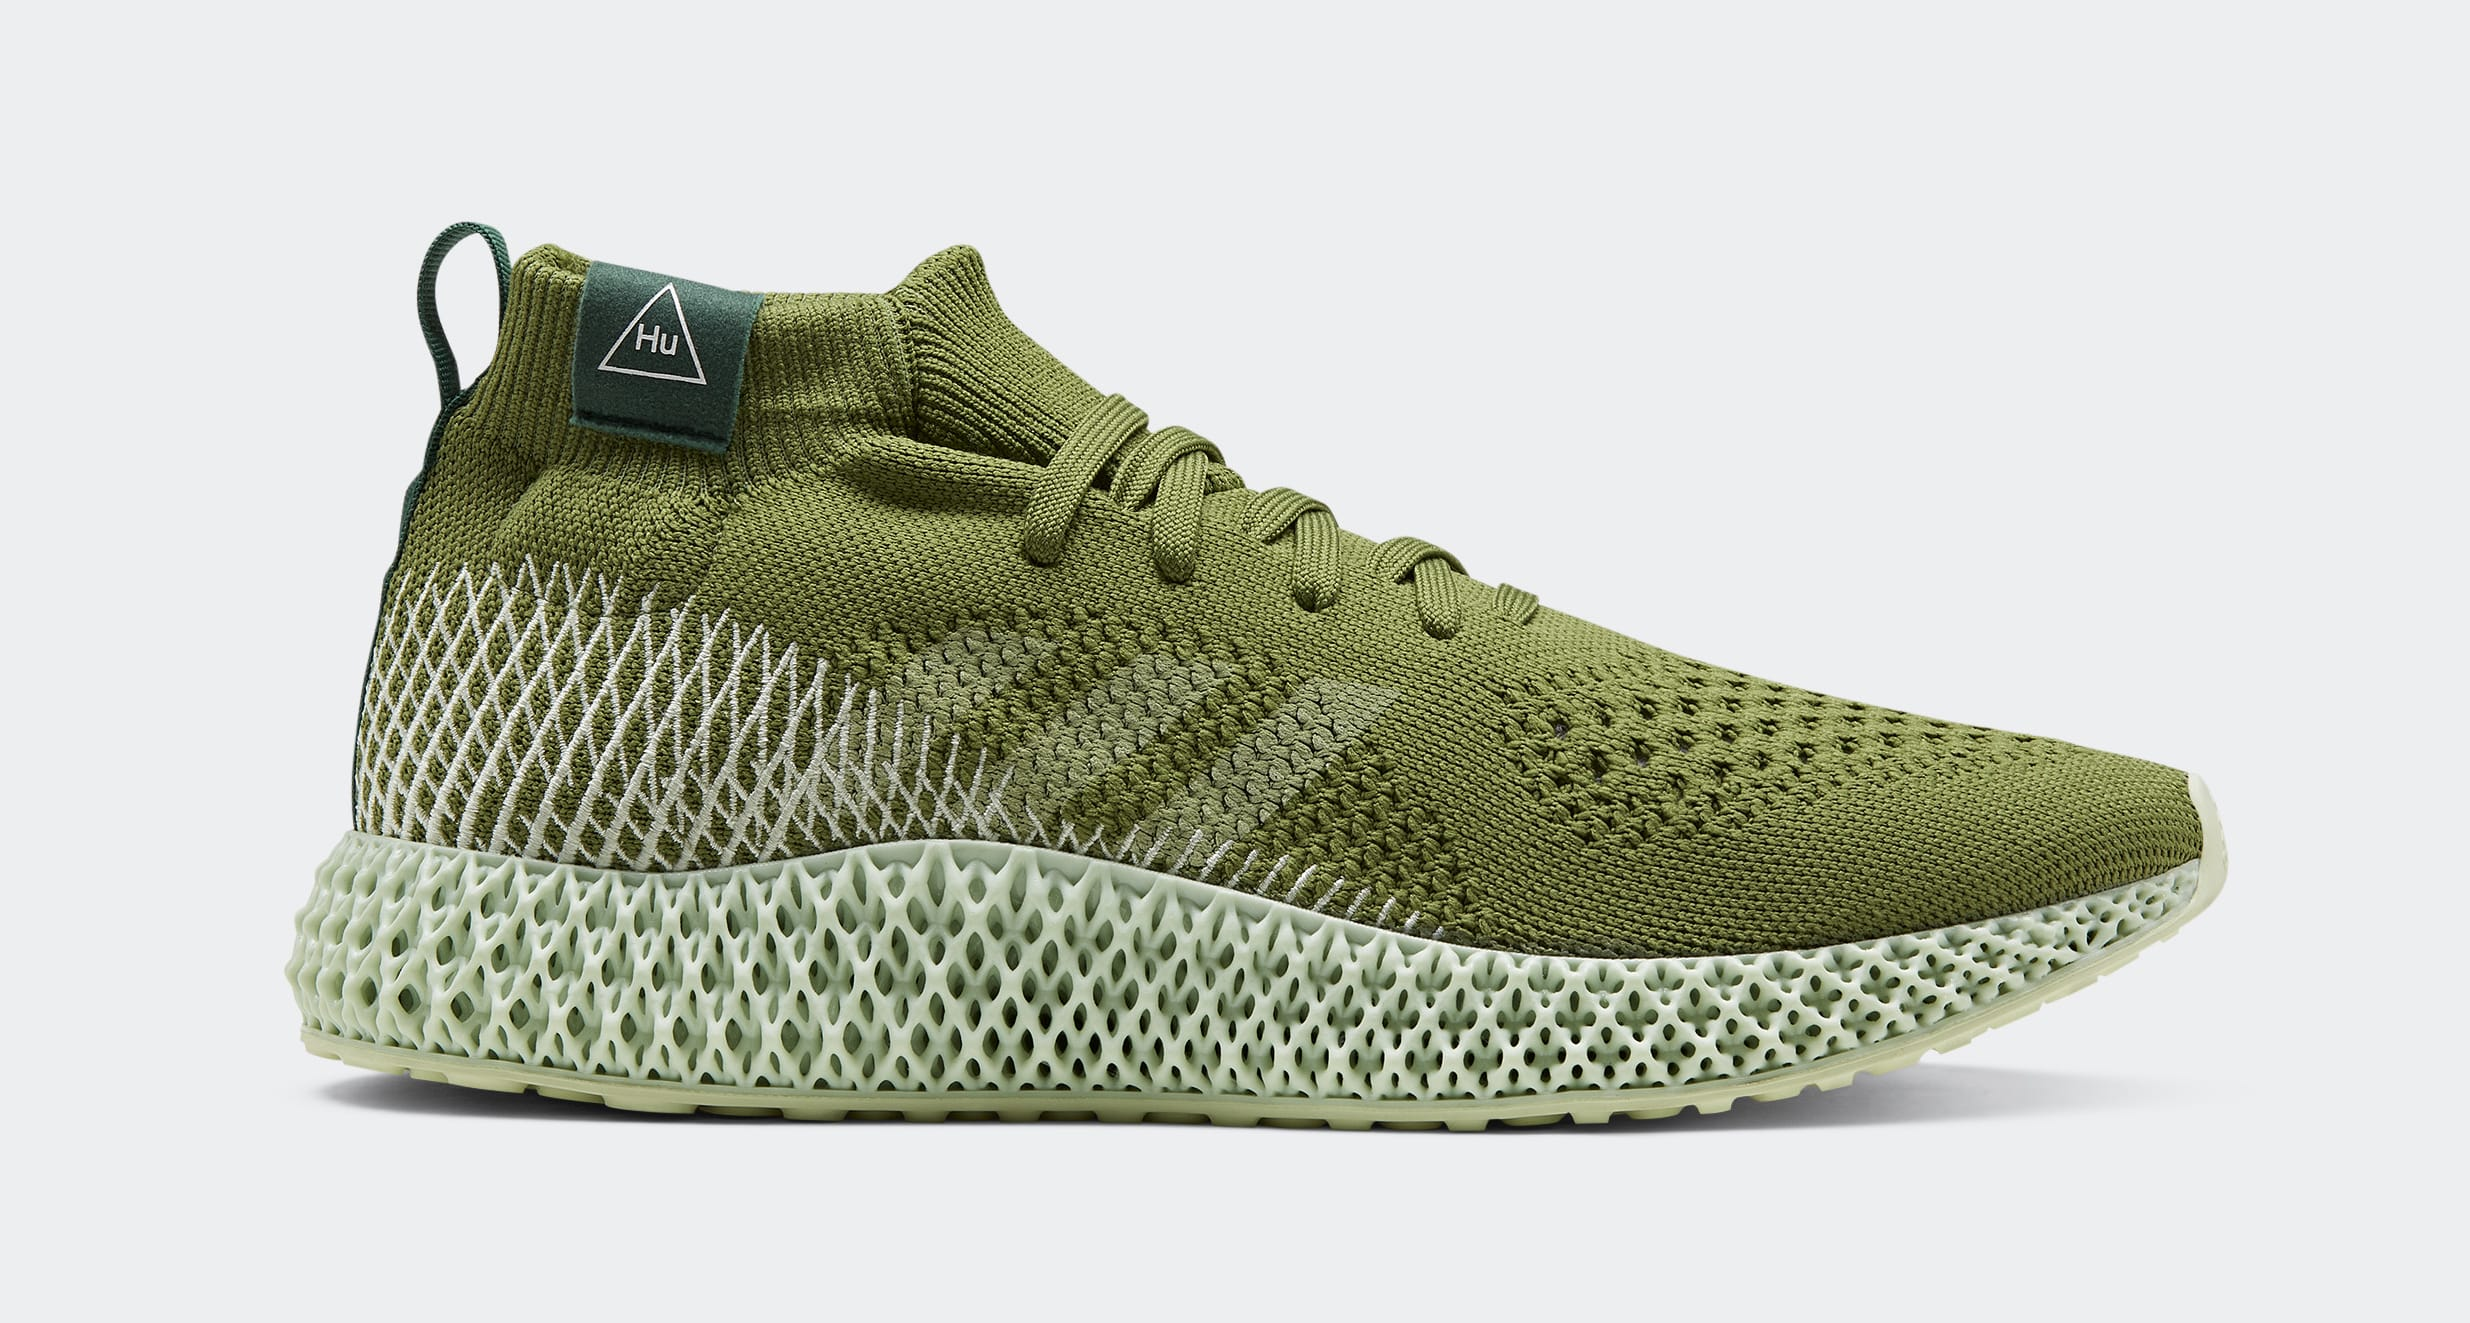 pharrell-williams-adidas-4d-tech-olive-fv6334-lateral